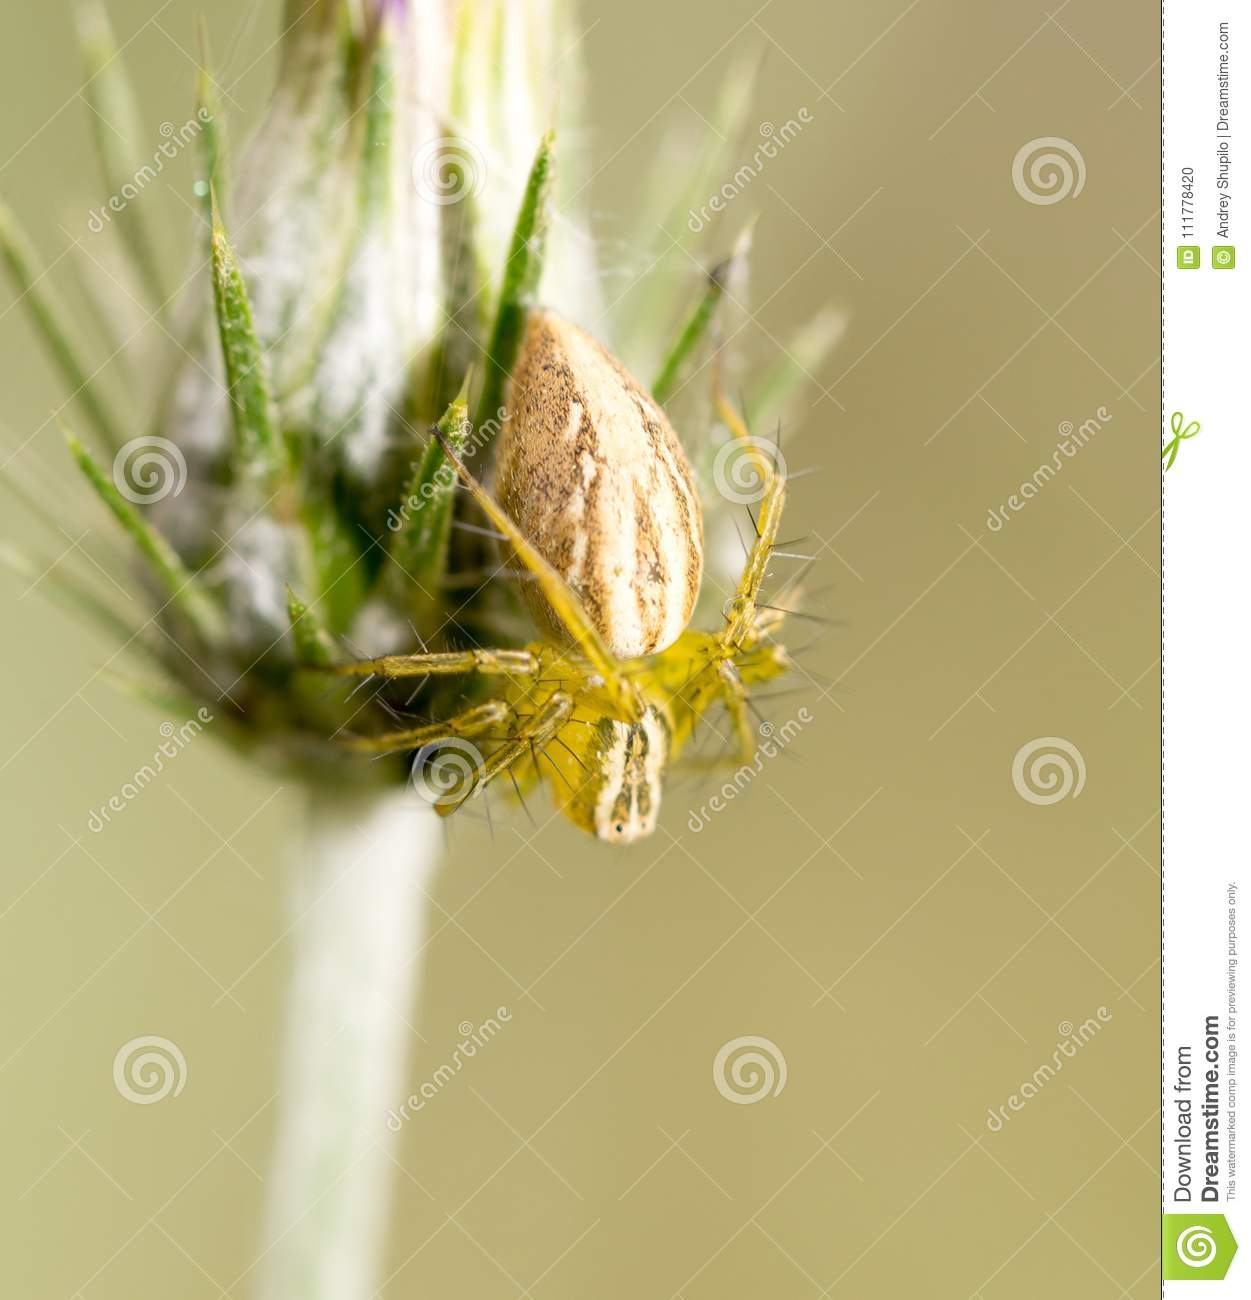 Spider on a plant in the nature